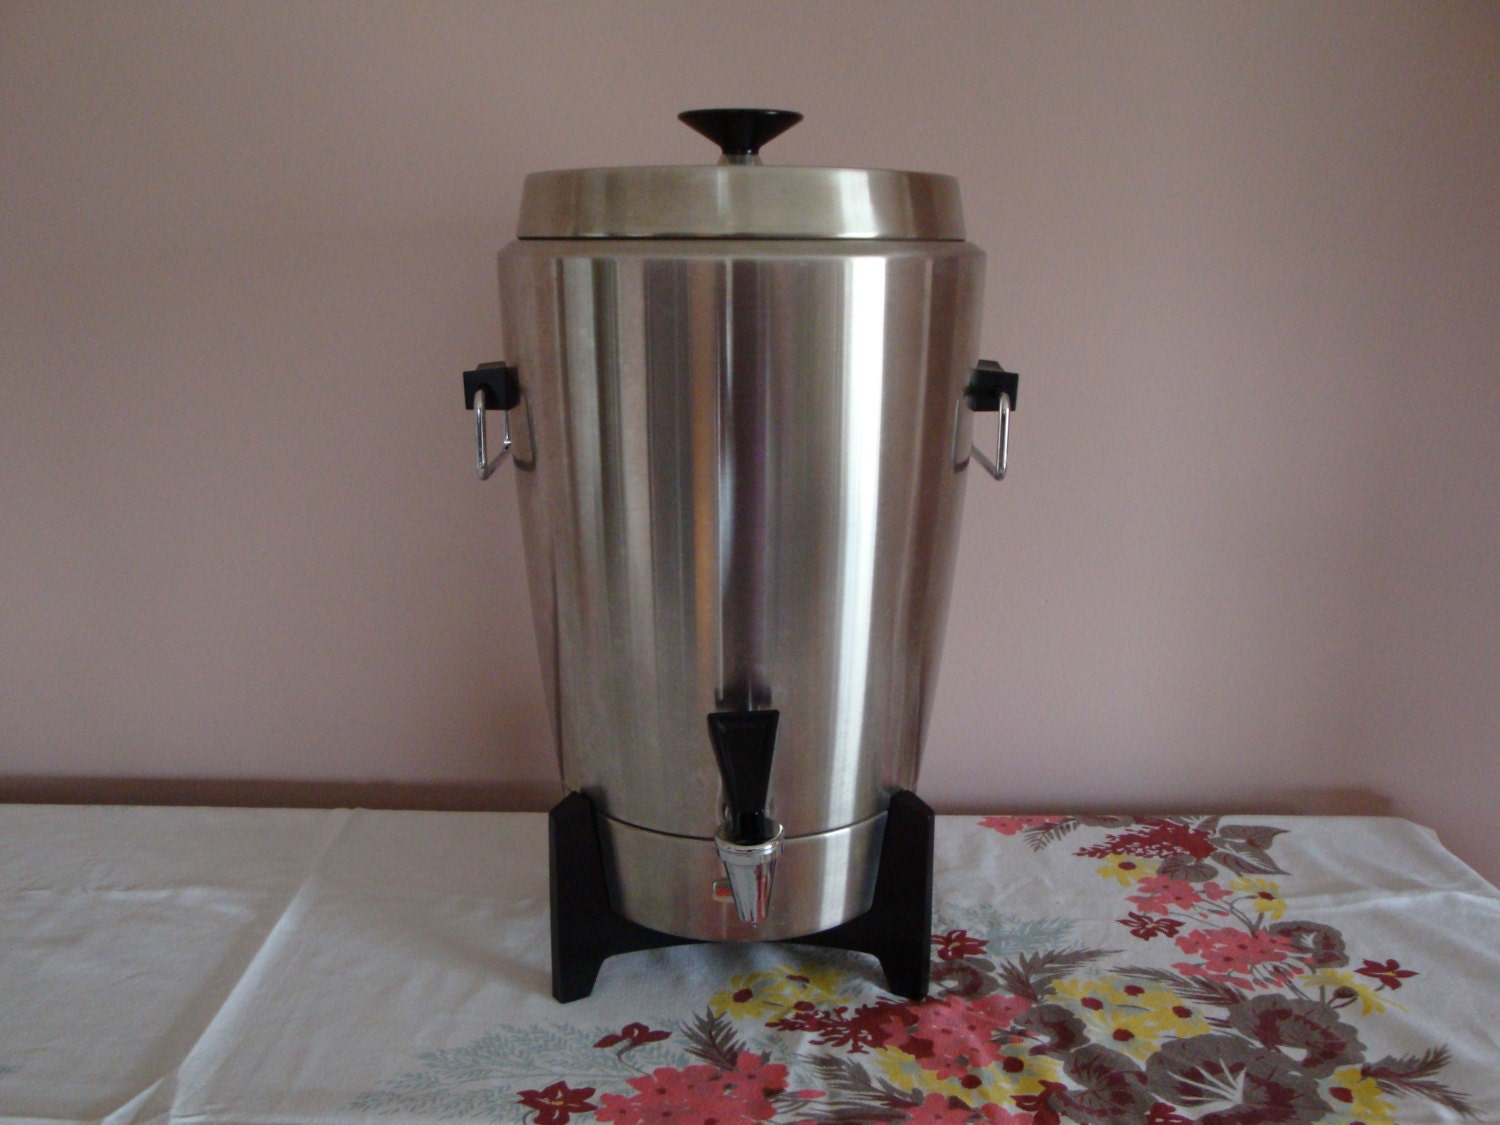 West Bend Coffee Maker Percolator : West Bend 30 Cup Stainless Steel Coffee Pot Percolator